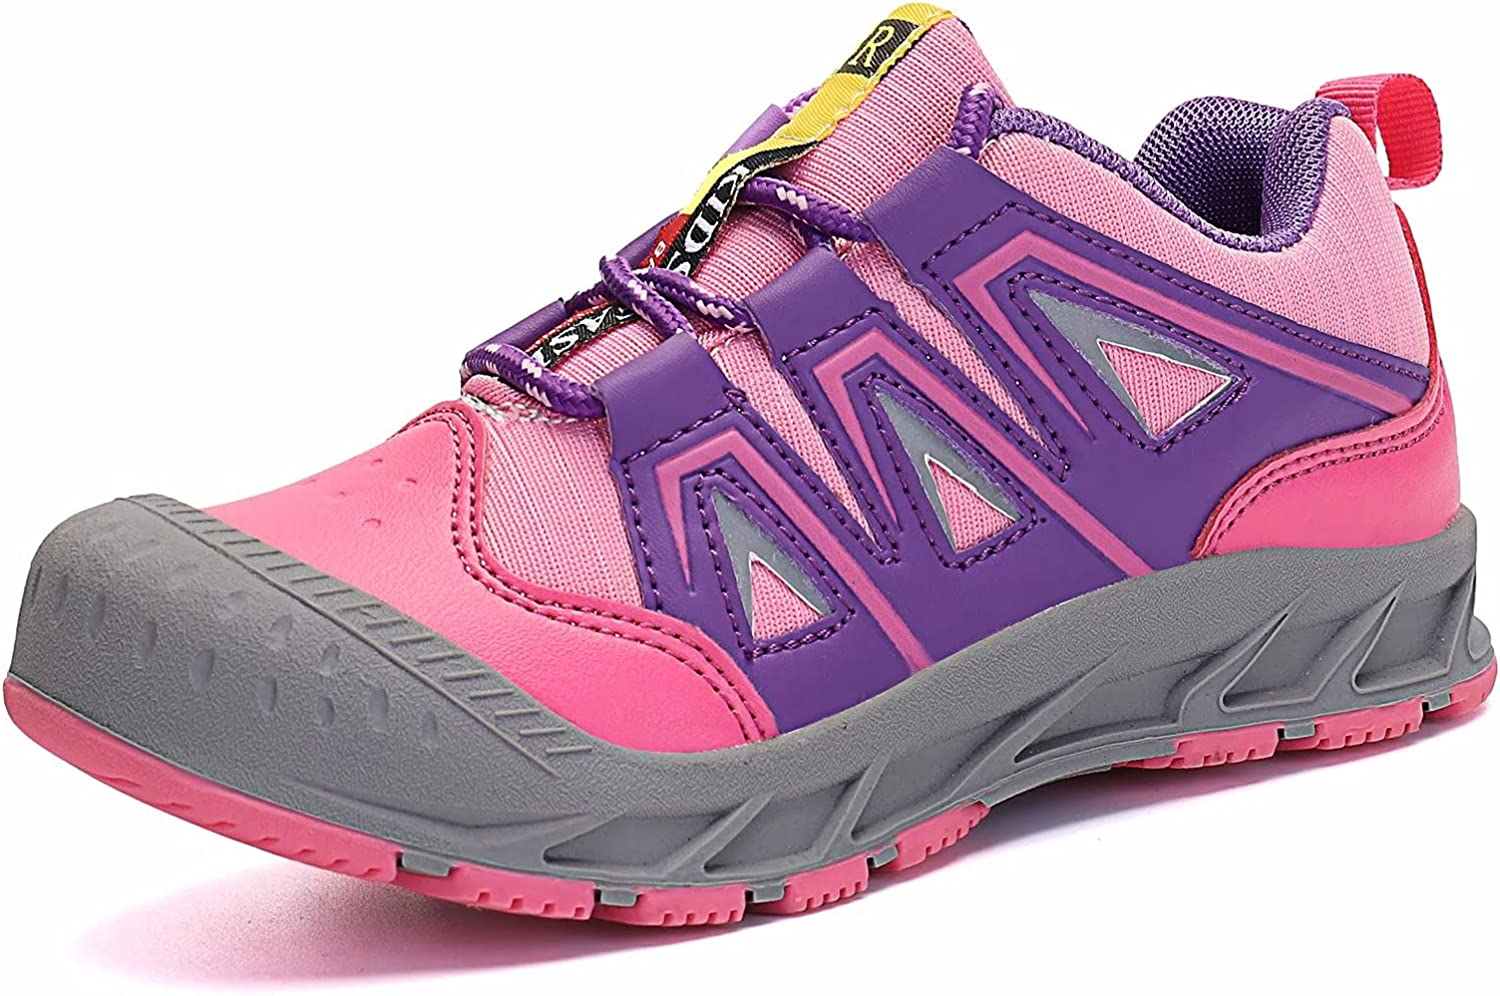 MEDUCH Boys Girls Trail Running Shoes Kids Breathable Hiking Shoes Lightweight Athletic Running Shoe